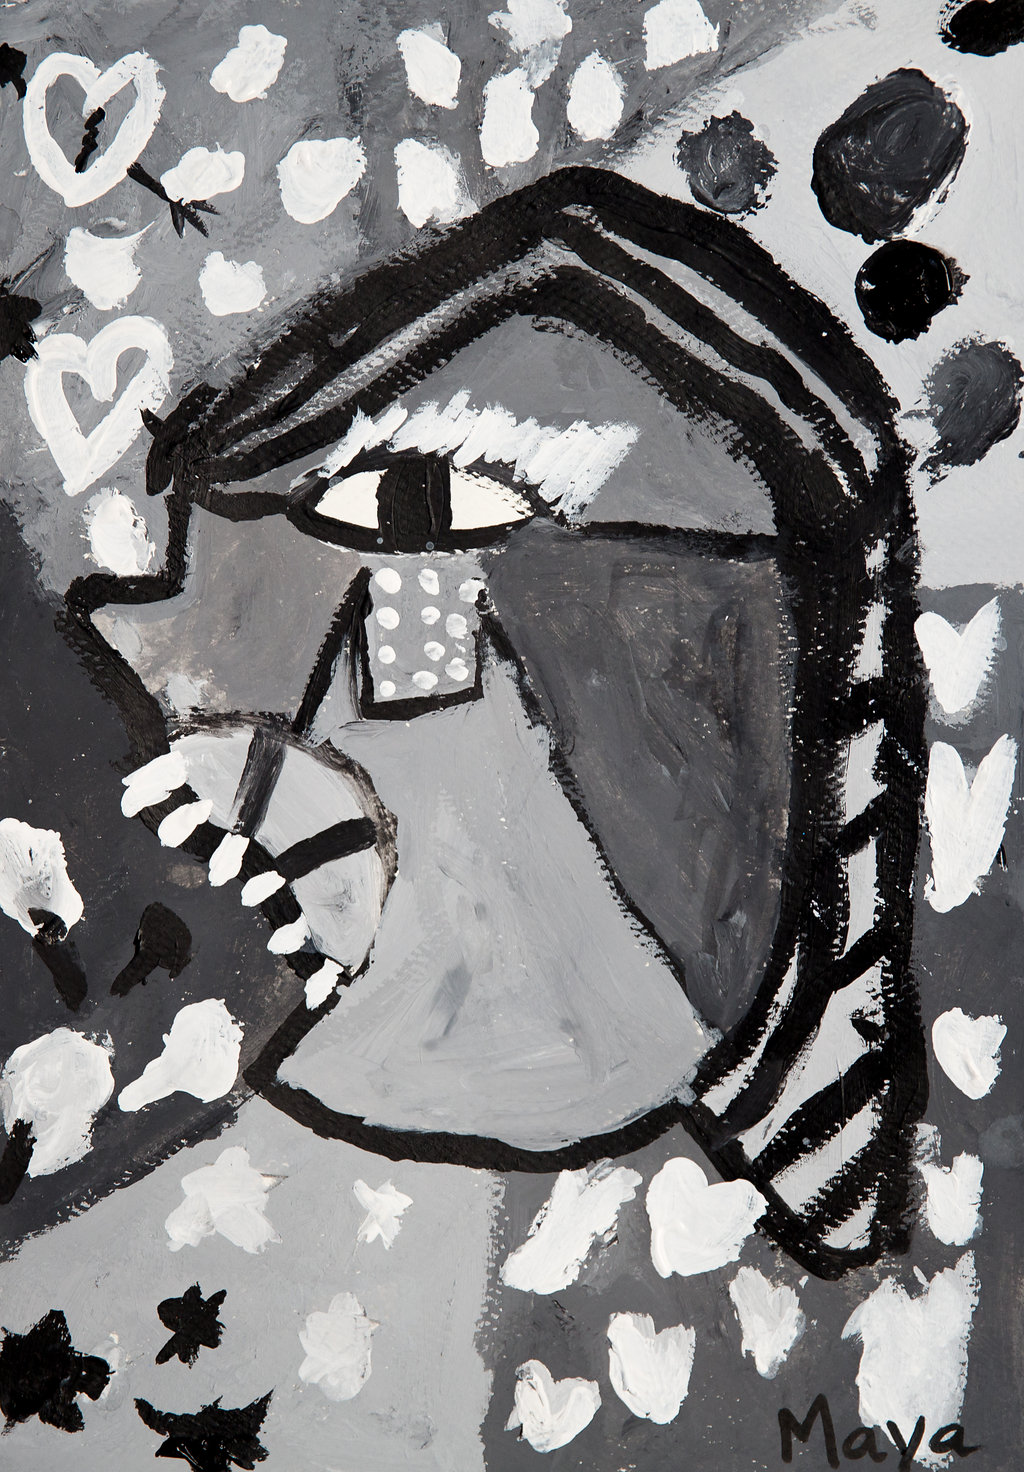 Picasso Guernica Project Year 2 Infant Children